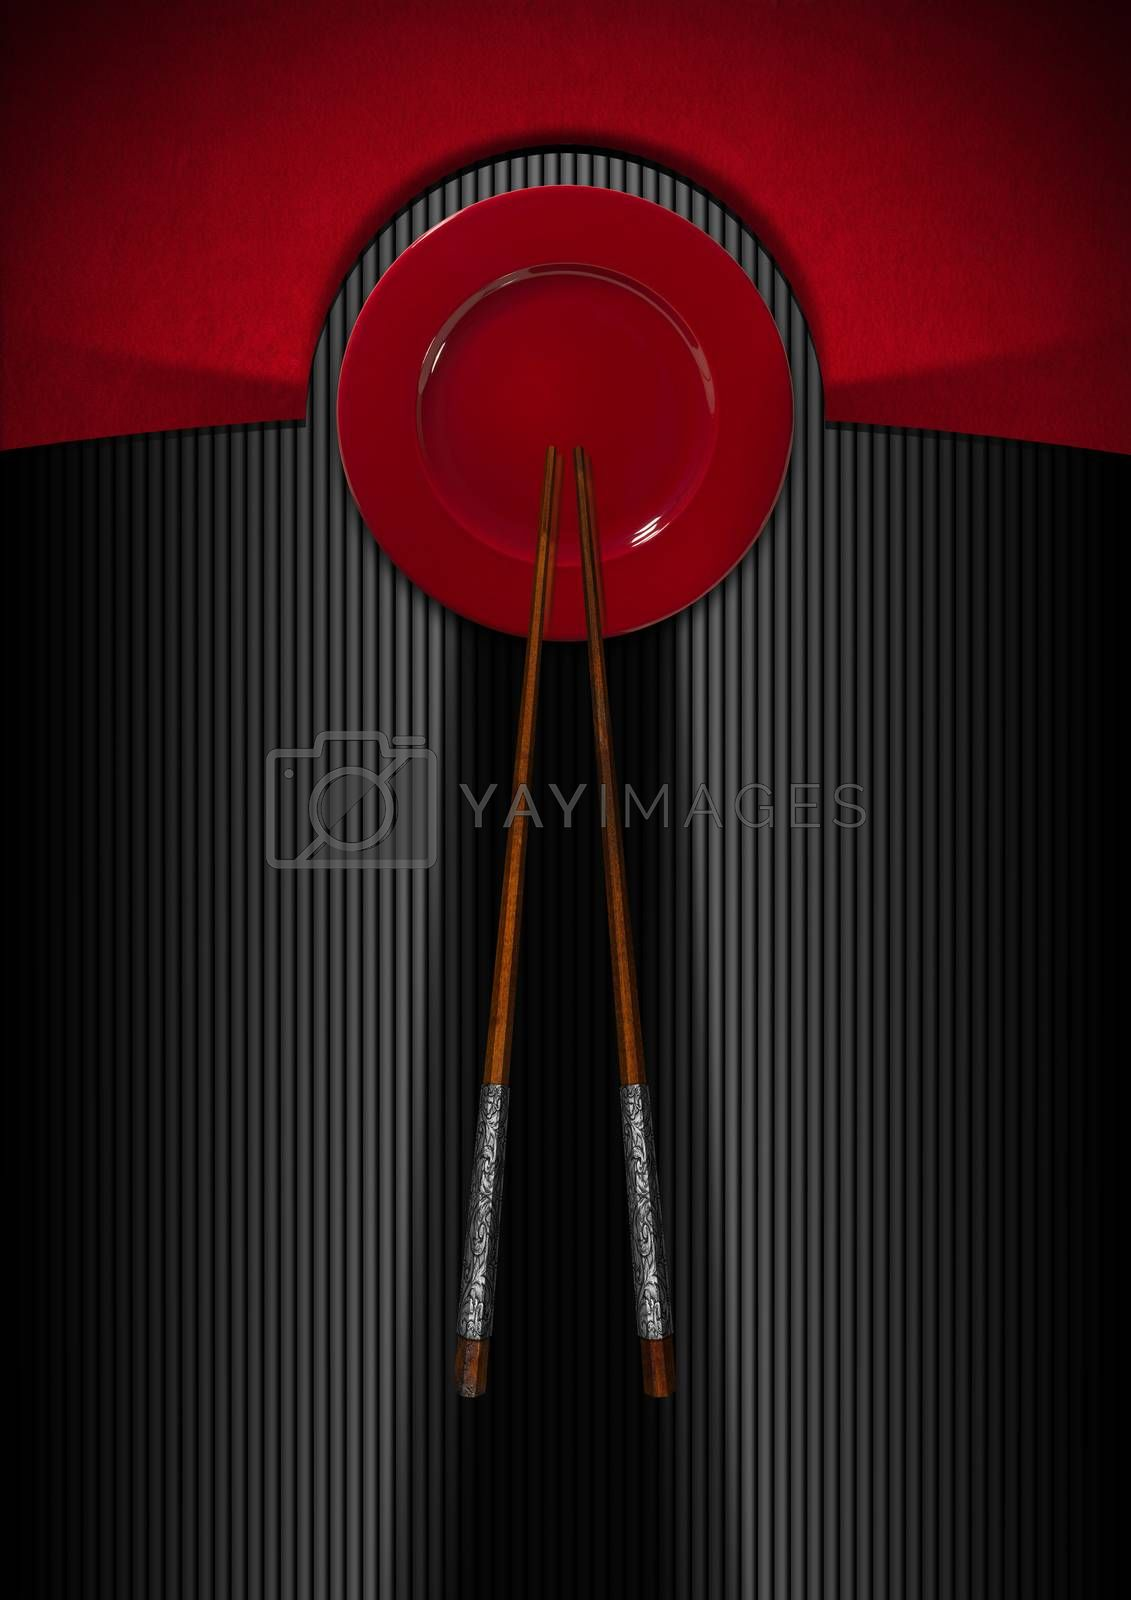 Template for an Asian menu with wooden and silver chopsticks and red plate. On a red, black and grey background